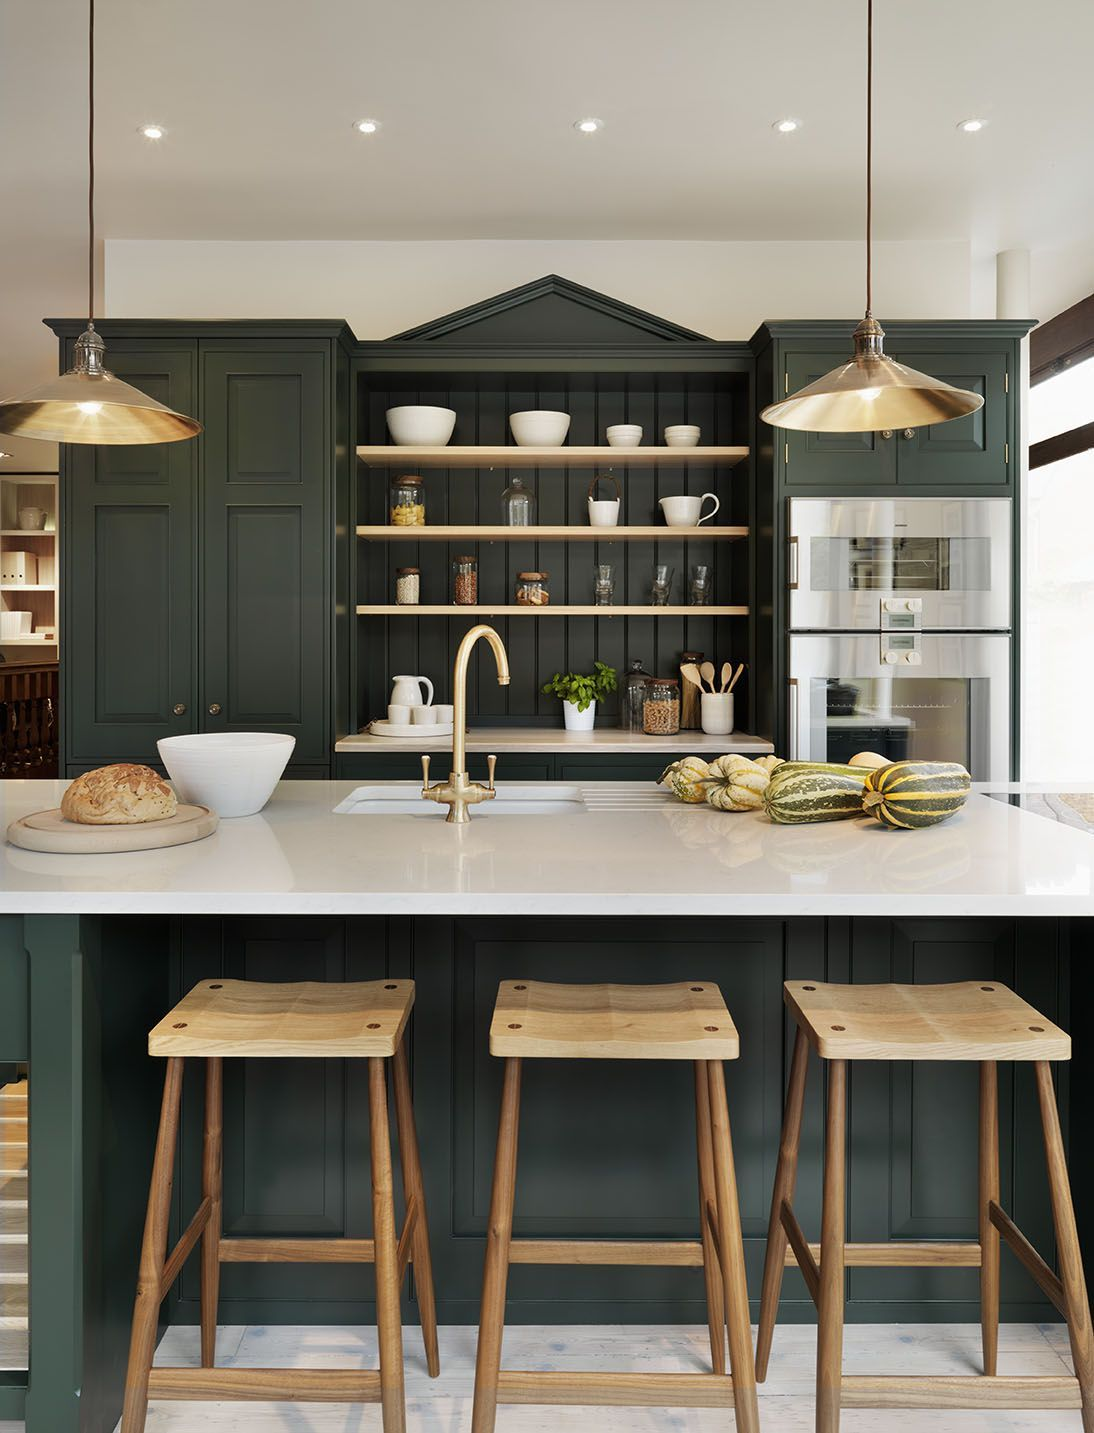 green kitchen cabinets cabinet refacing mississauga hunter with a brass sink faucet pendant lights and hardware atop carrera marble counters